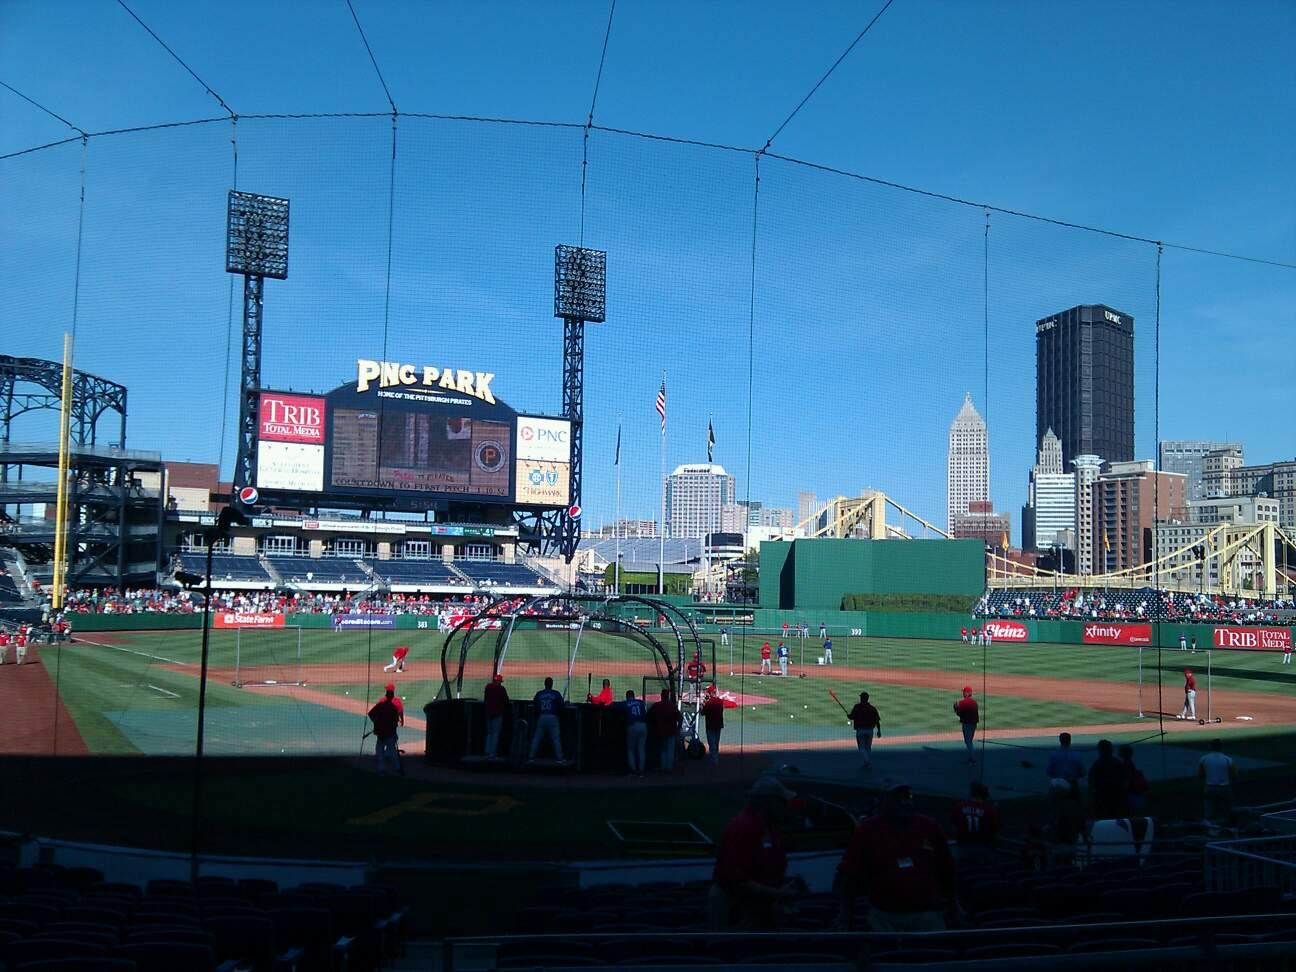 PNC Park Section 116 Row c Seat 8